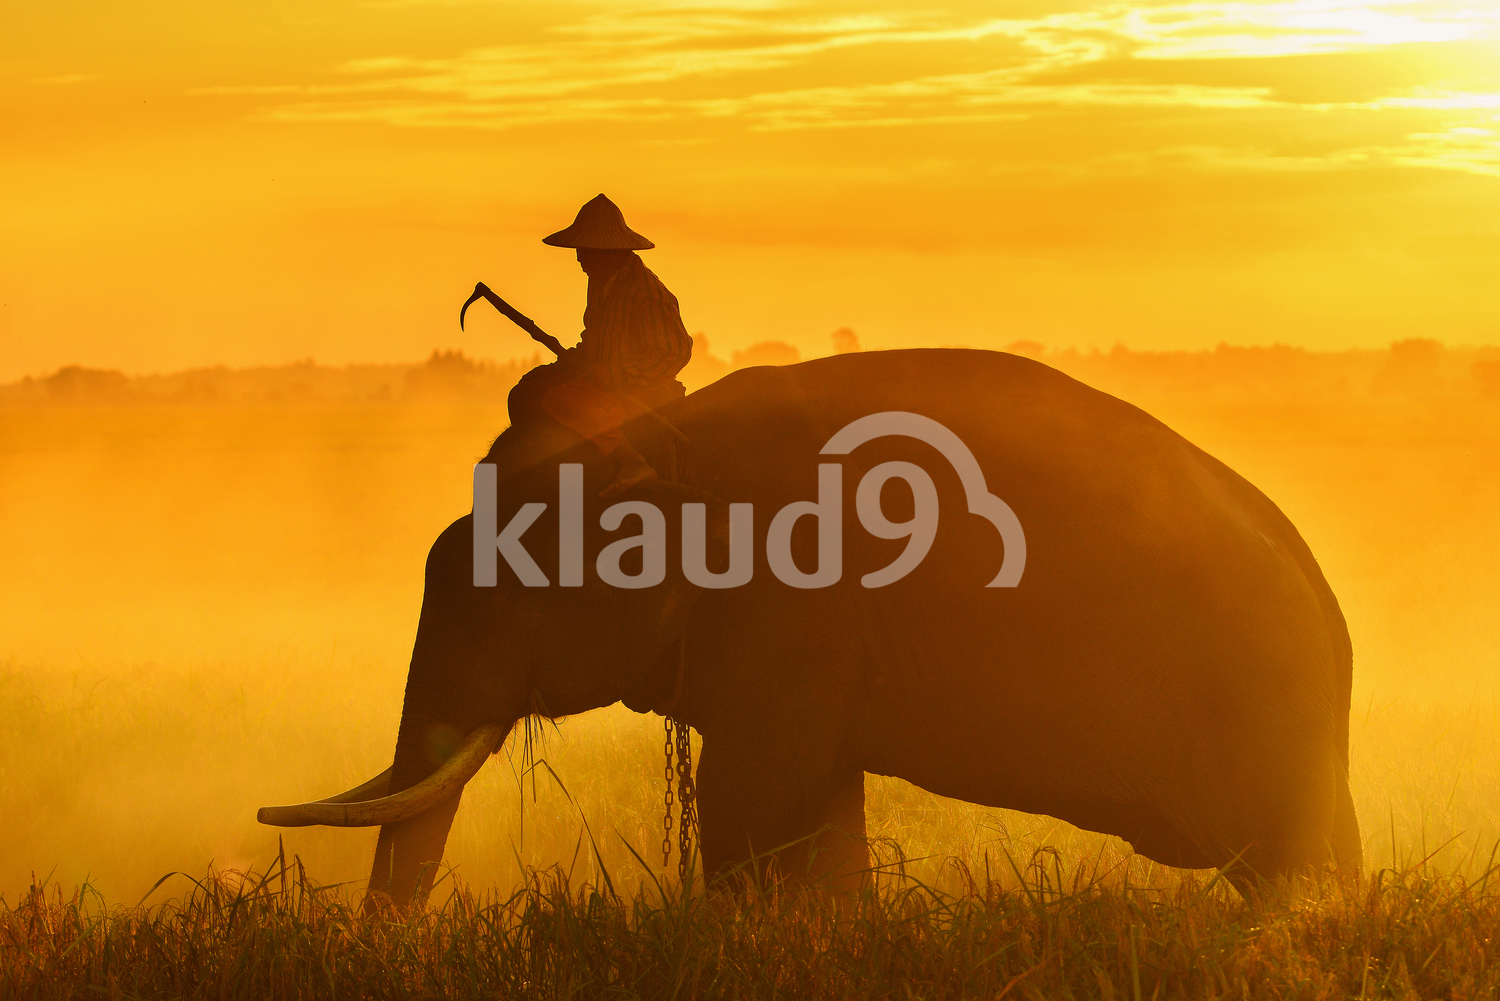 Silhouette of an Elephant and man in Thailand